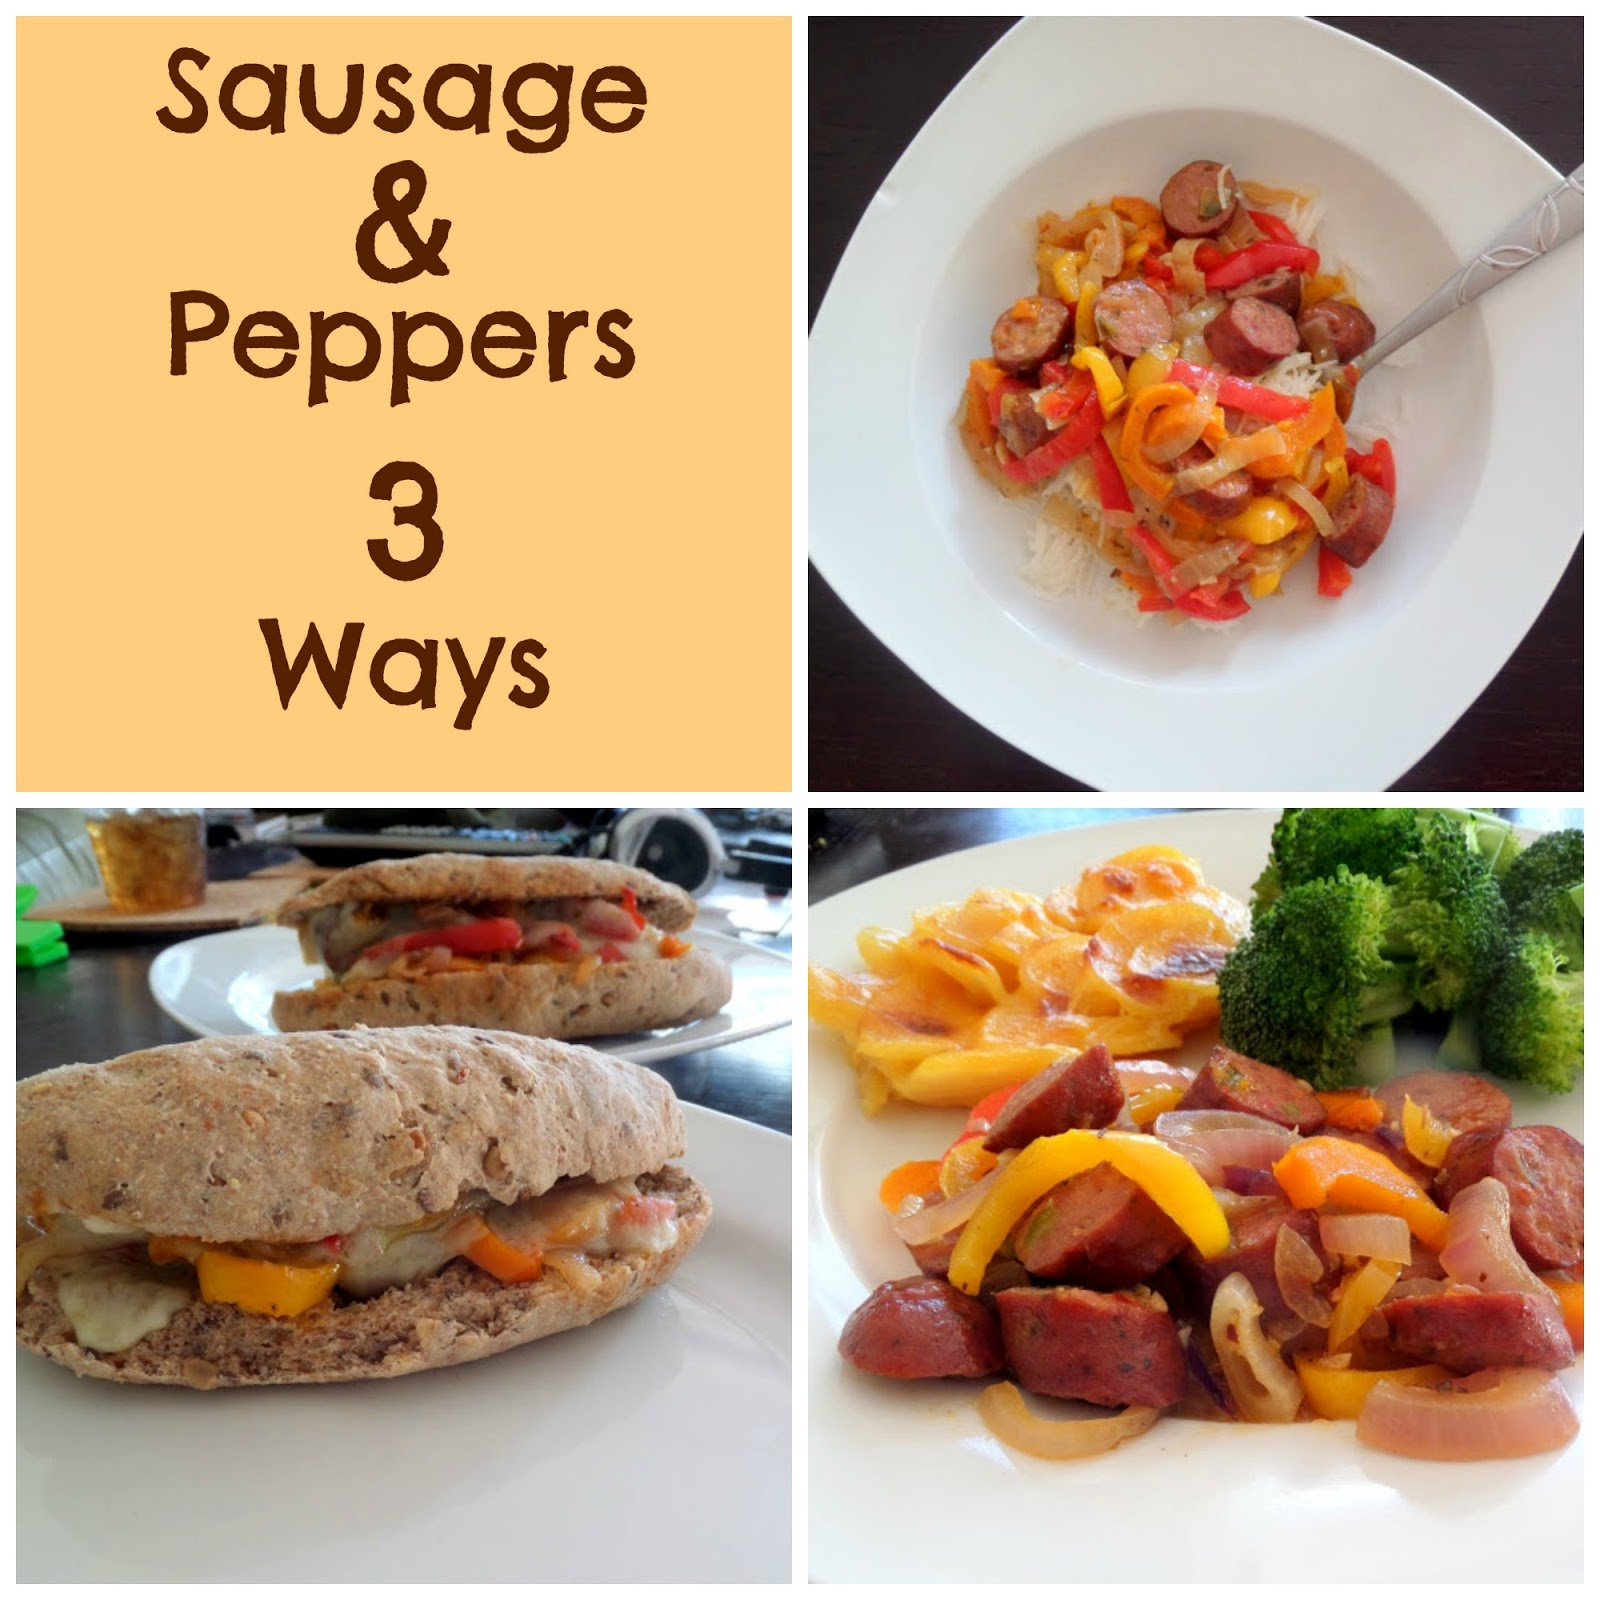 Easy Sausage and Peppers (3 Ways):  An easy one pot dish of sausage, peppers, and onions that can be served 3 different ways for 3 separate meals.